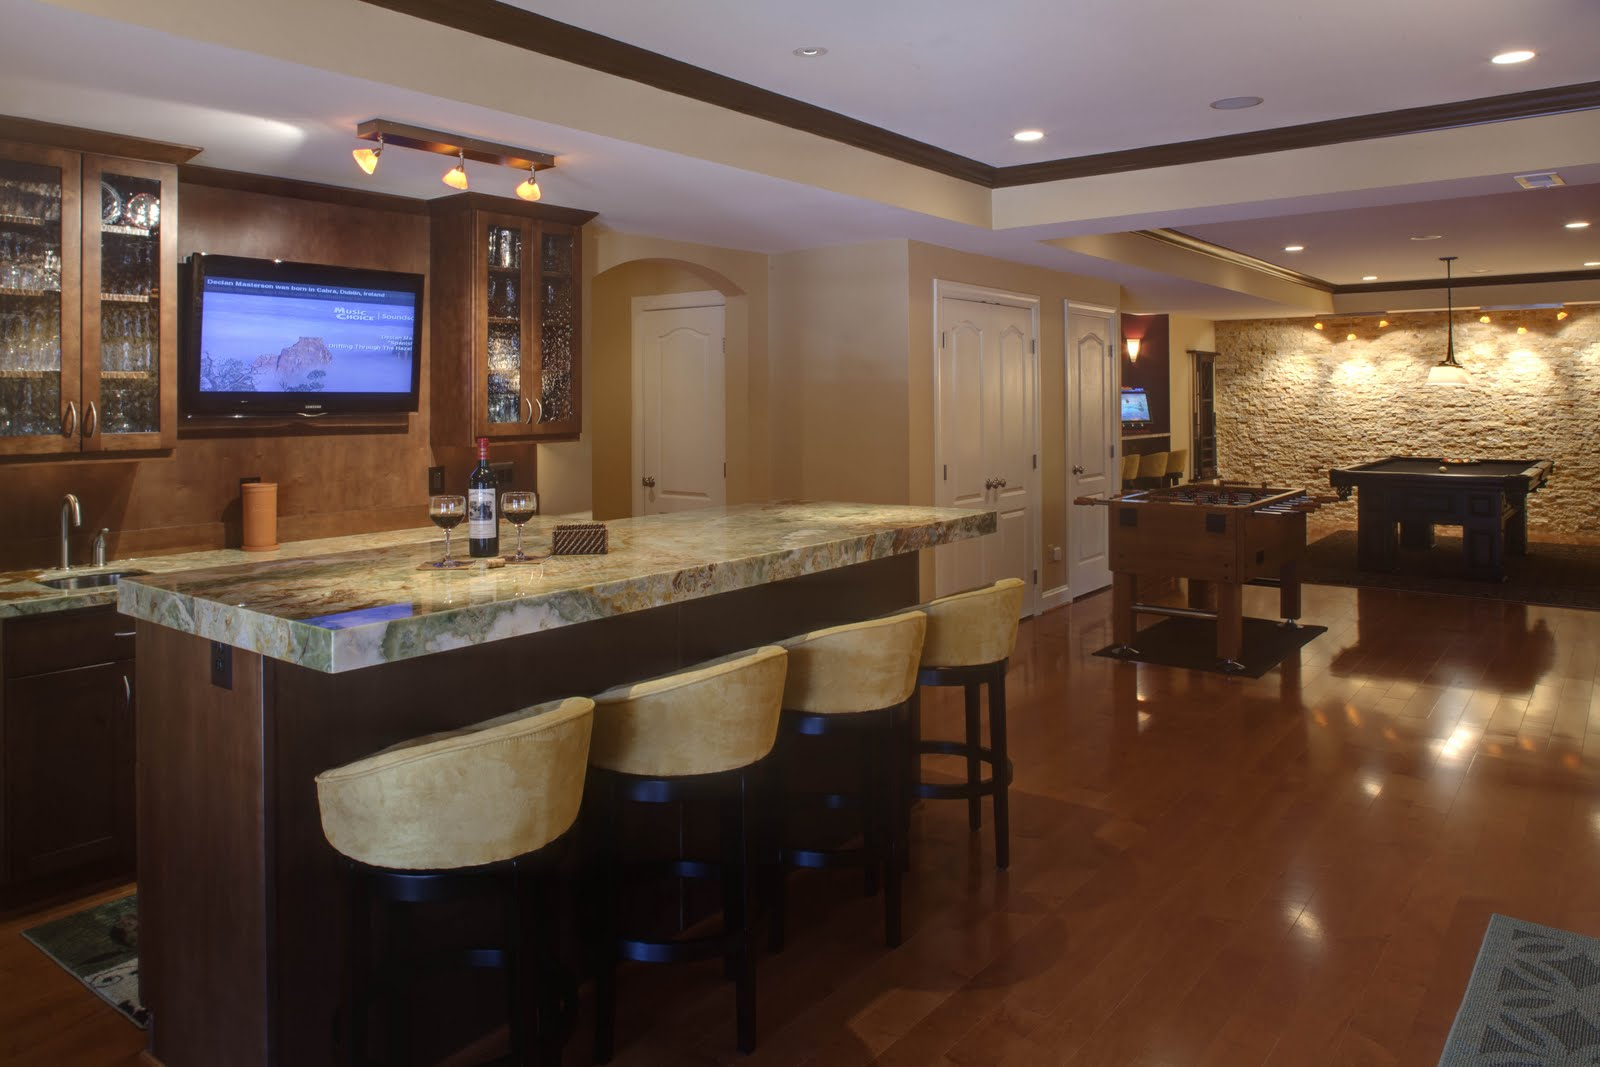 Home Equity Builders Inc Constructive Ideas 2011 Chrysalis Award Winning Finished Basement